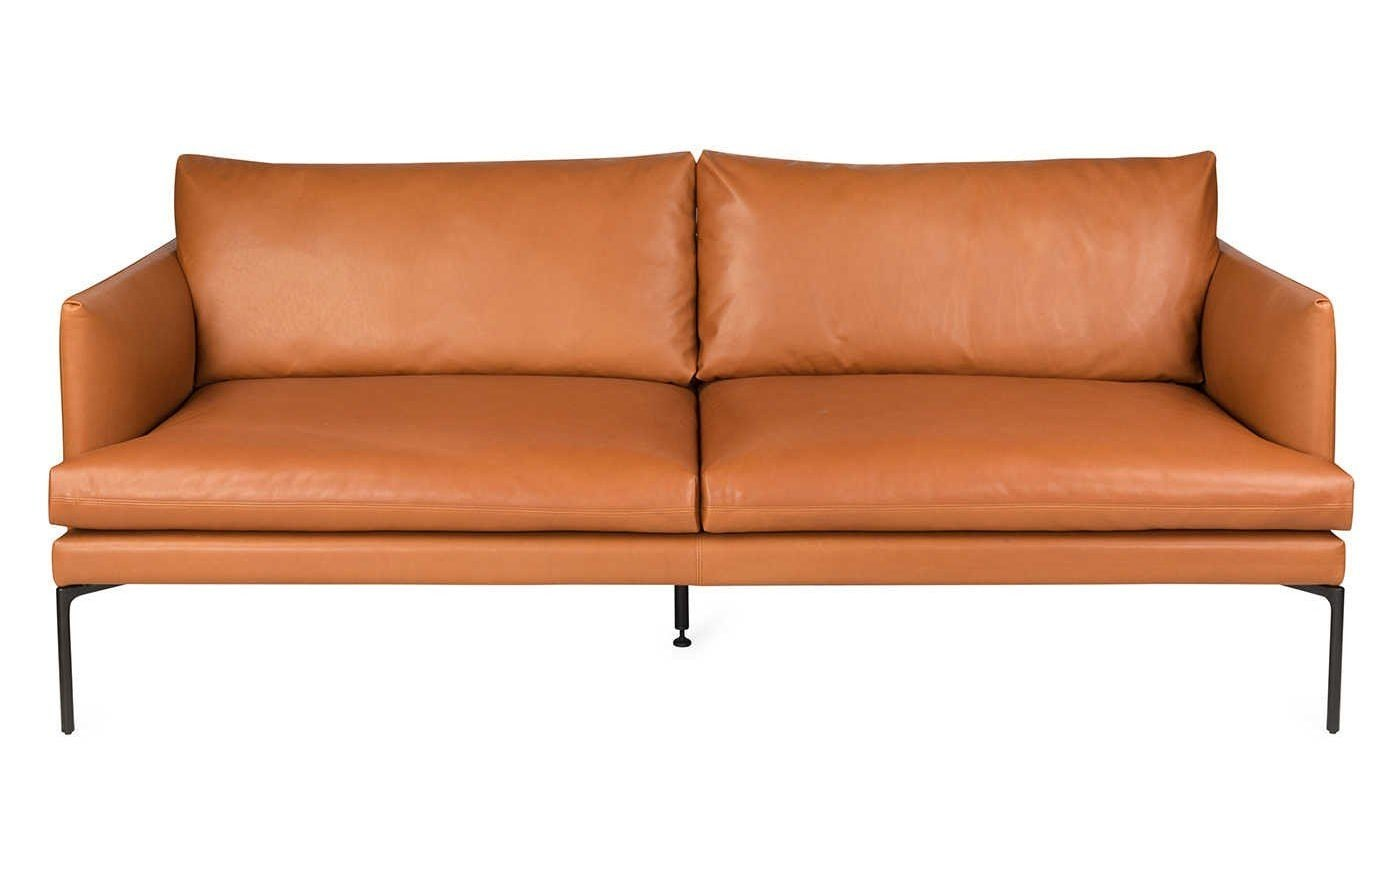 the leather sofa company uk set in chennai olx 17 of best sofas and couches to buy for all budgets heal s